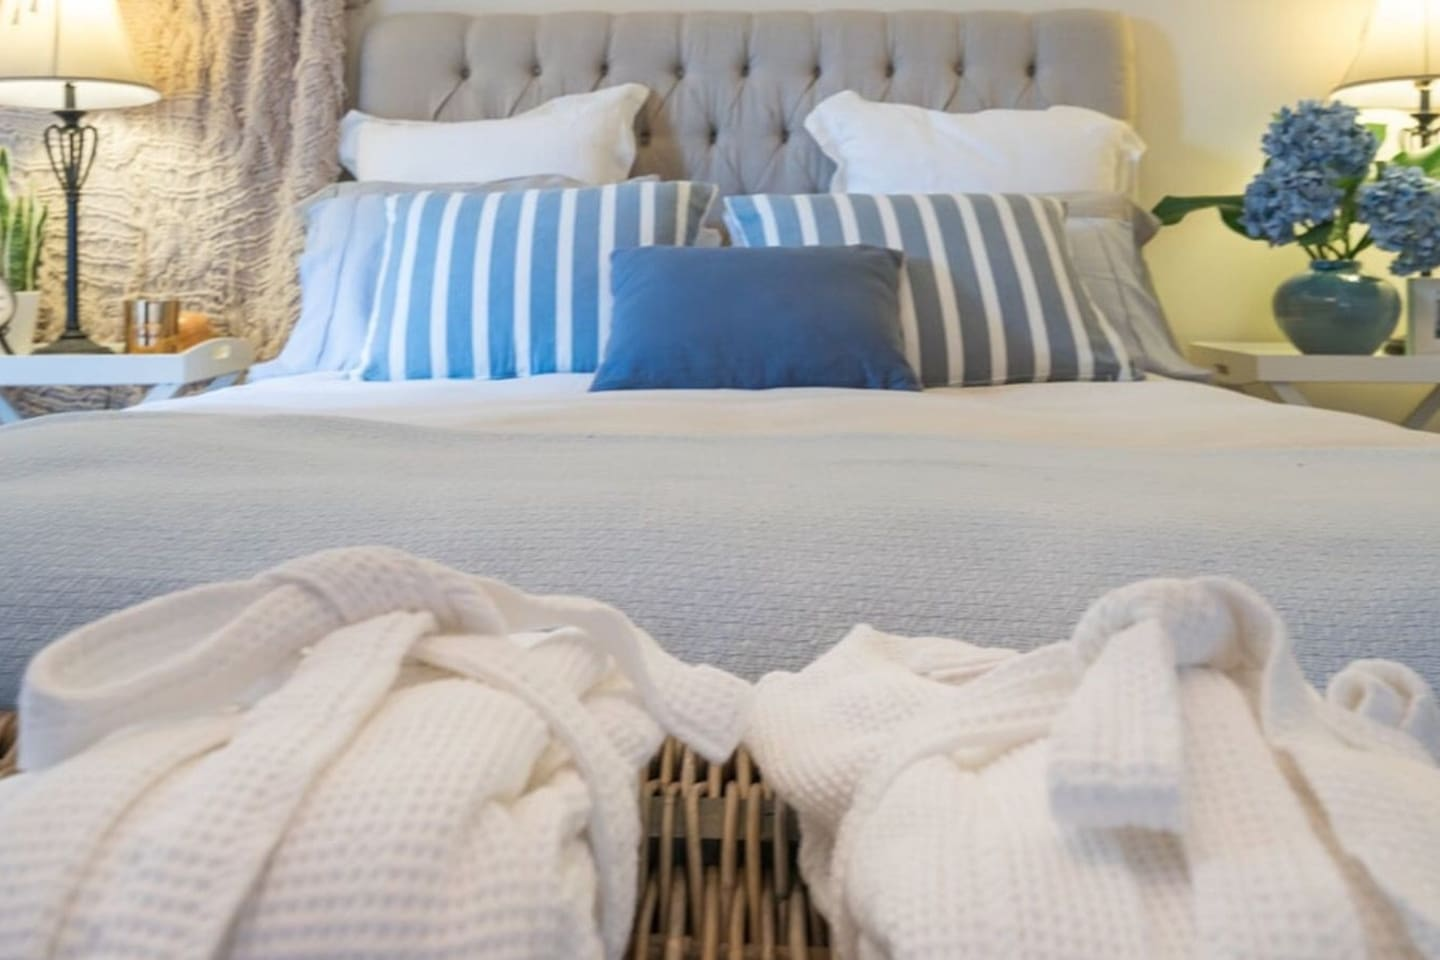 Beautiful French linen for a romantic getaway